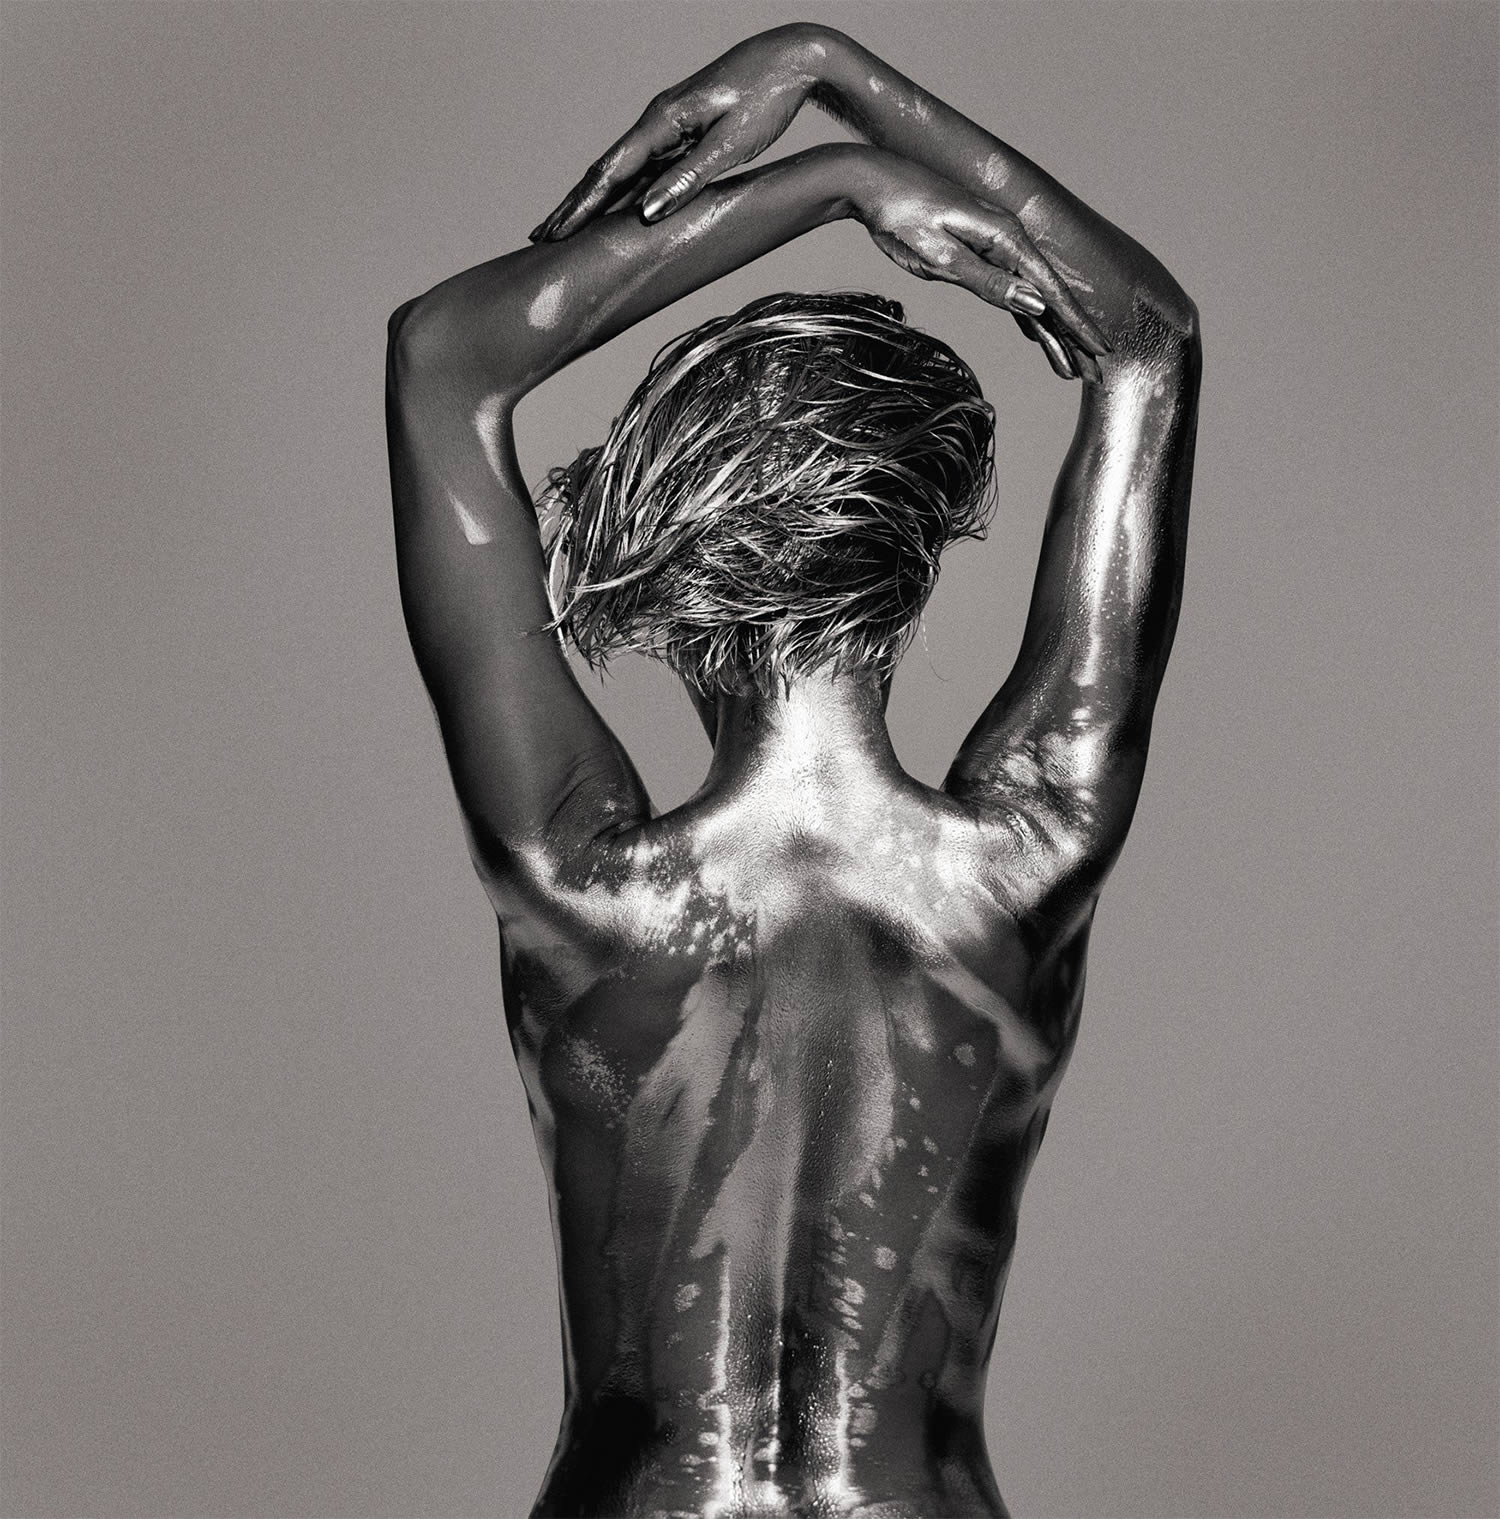 nude silver model from argentum photo series